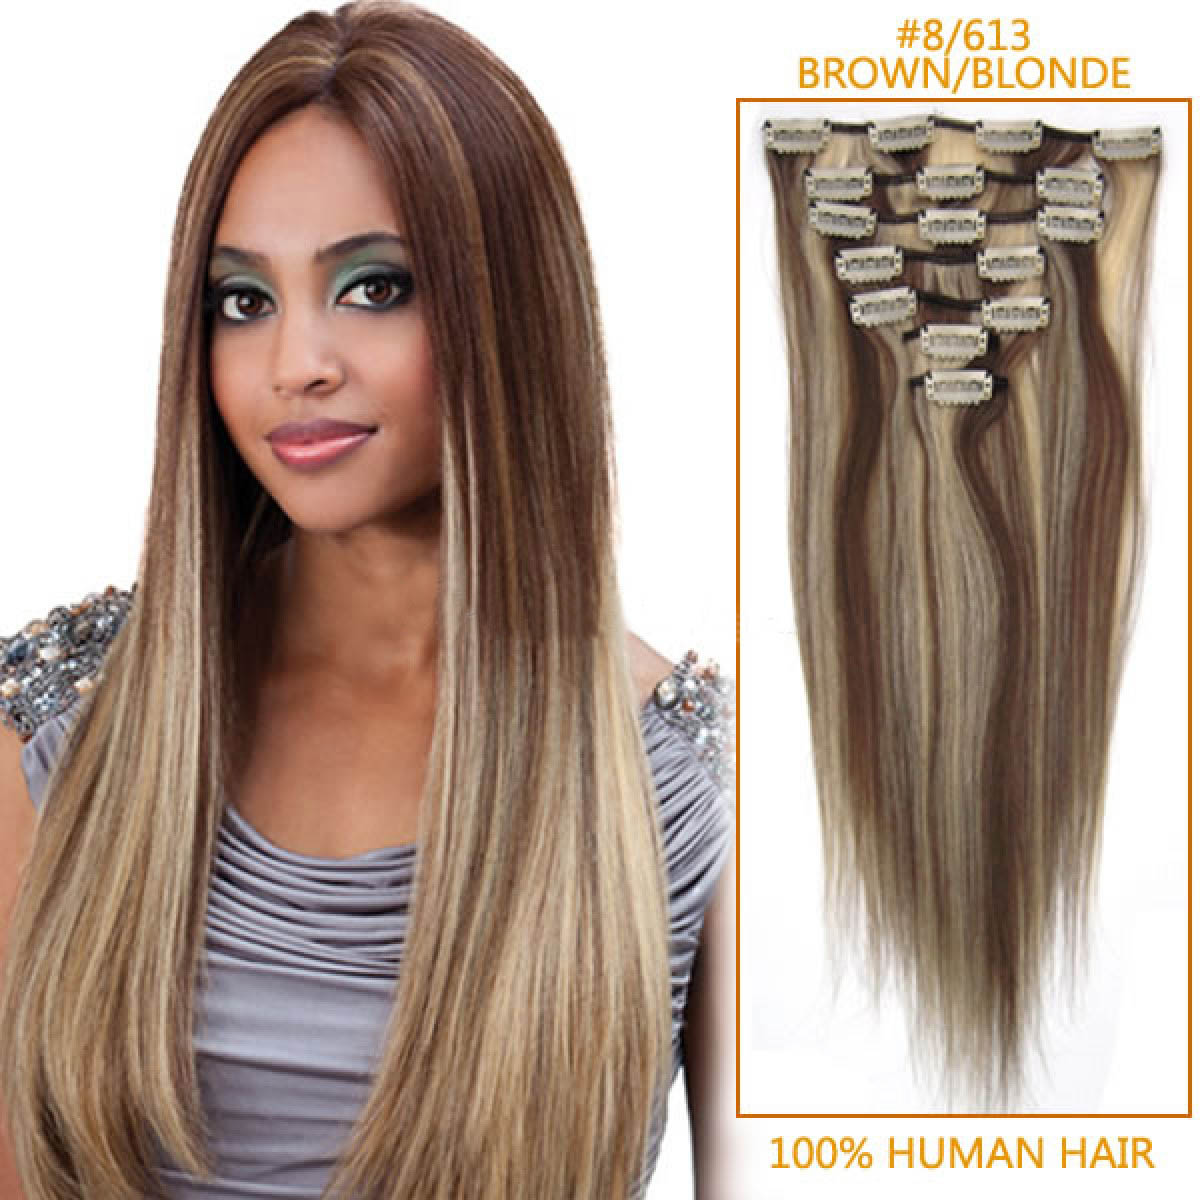 ... Inch #8/613 Brown/Blonde Clip In Remy Human Hair Extensions 9pcs no 2